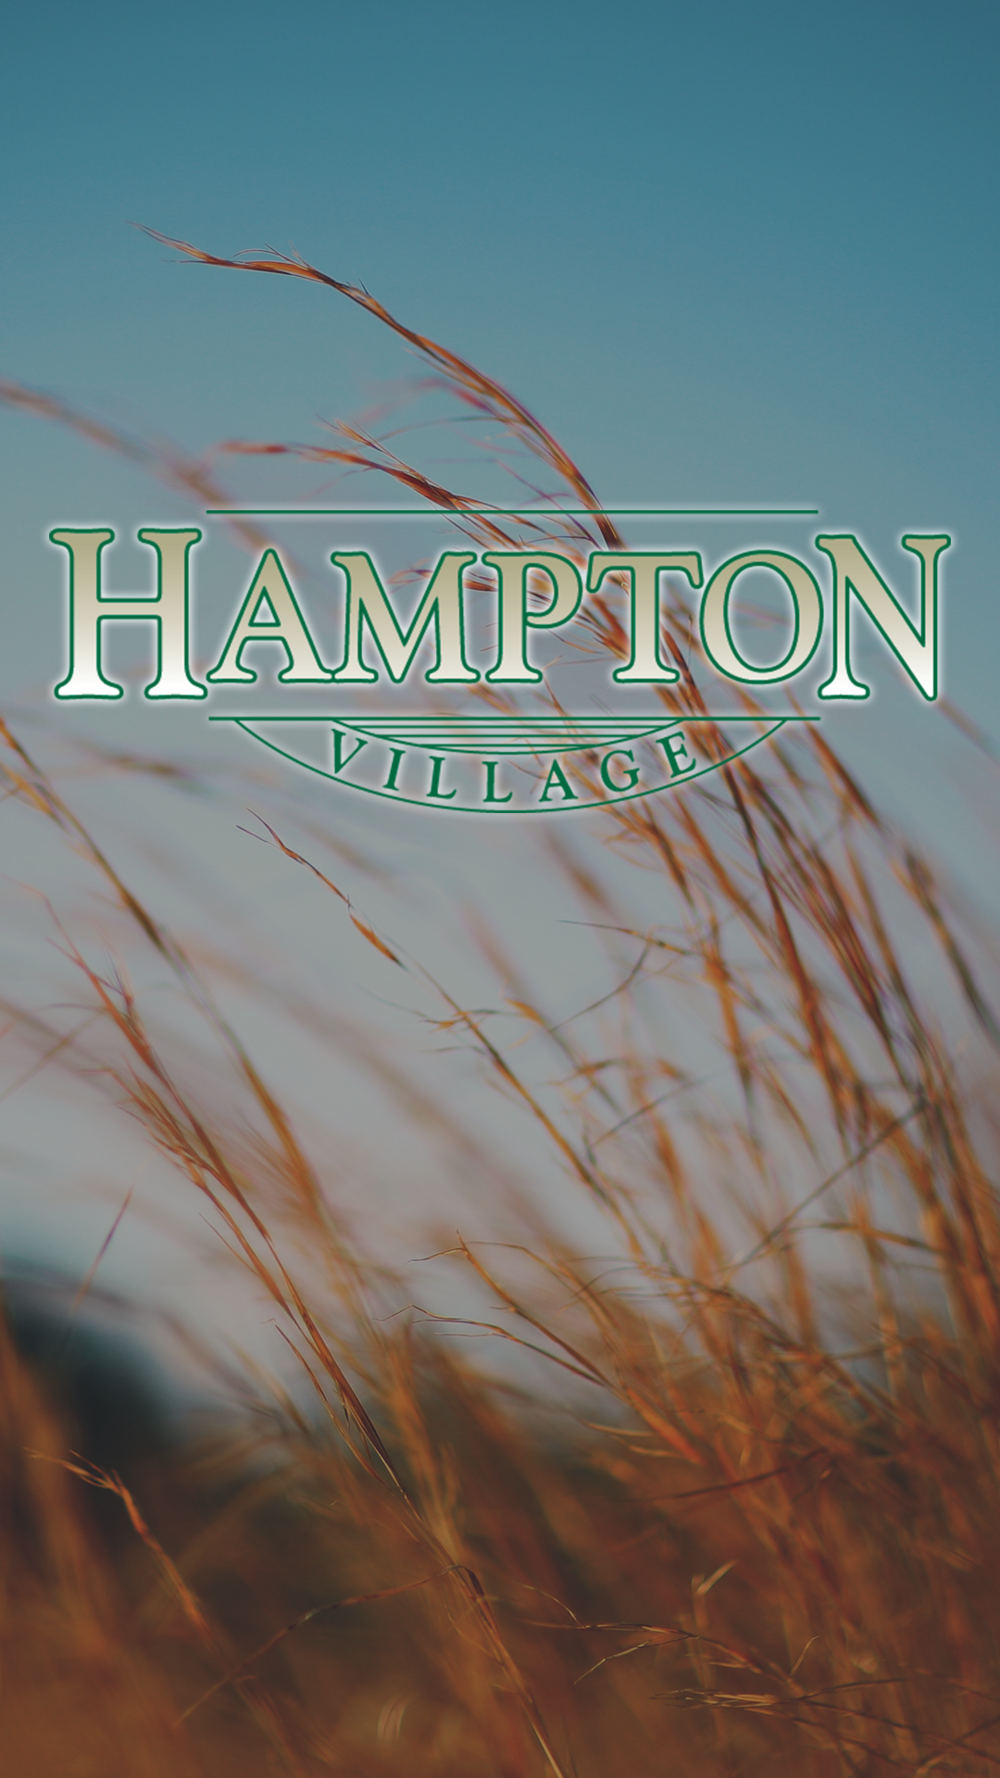 Hampton Village.png